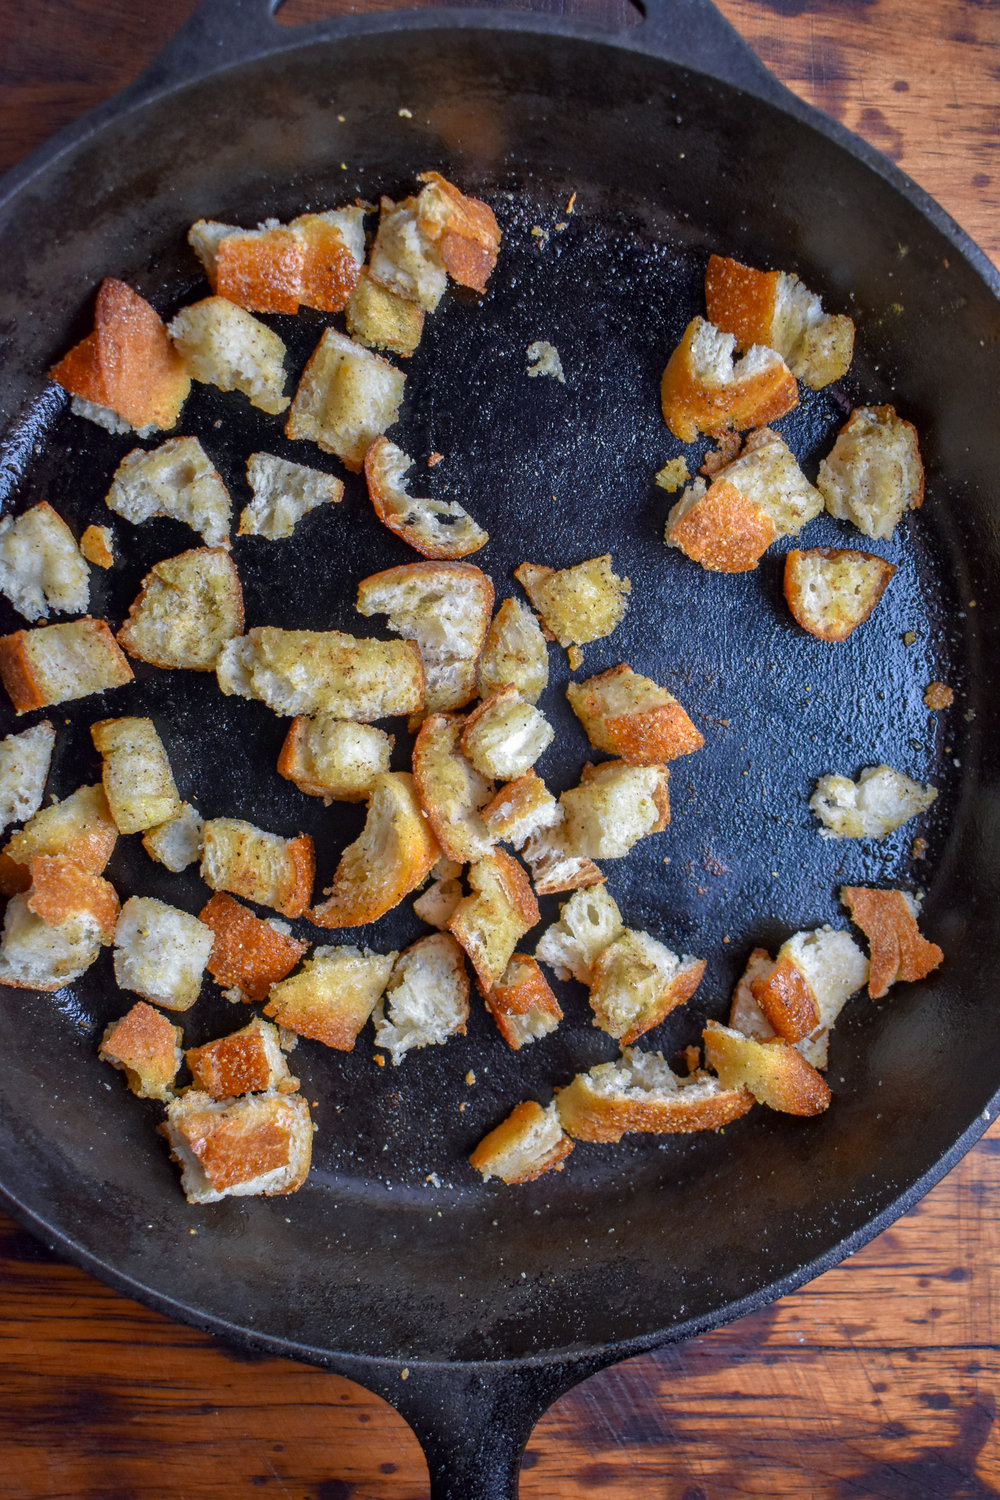 6. As the soup simmers and mushrooms cook, add ciabatta cubes to a castiron pan (or frying pan) on medium heat with vegan butter and spices. Mix well. Cook on each side for 3-4 minutes.